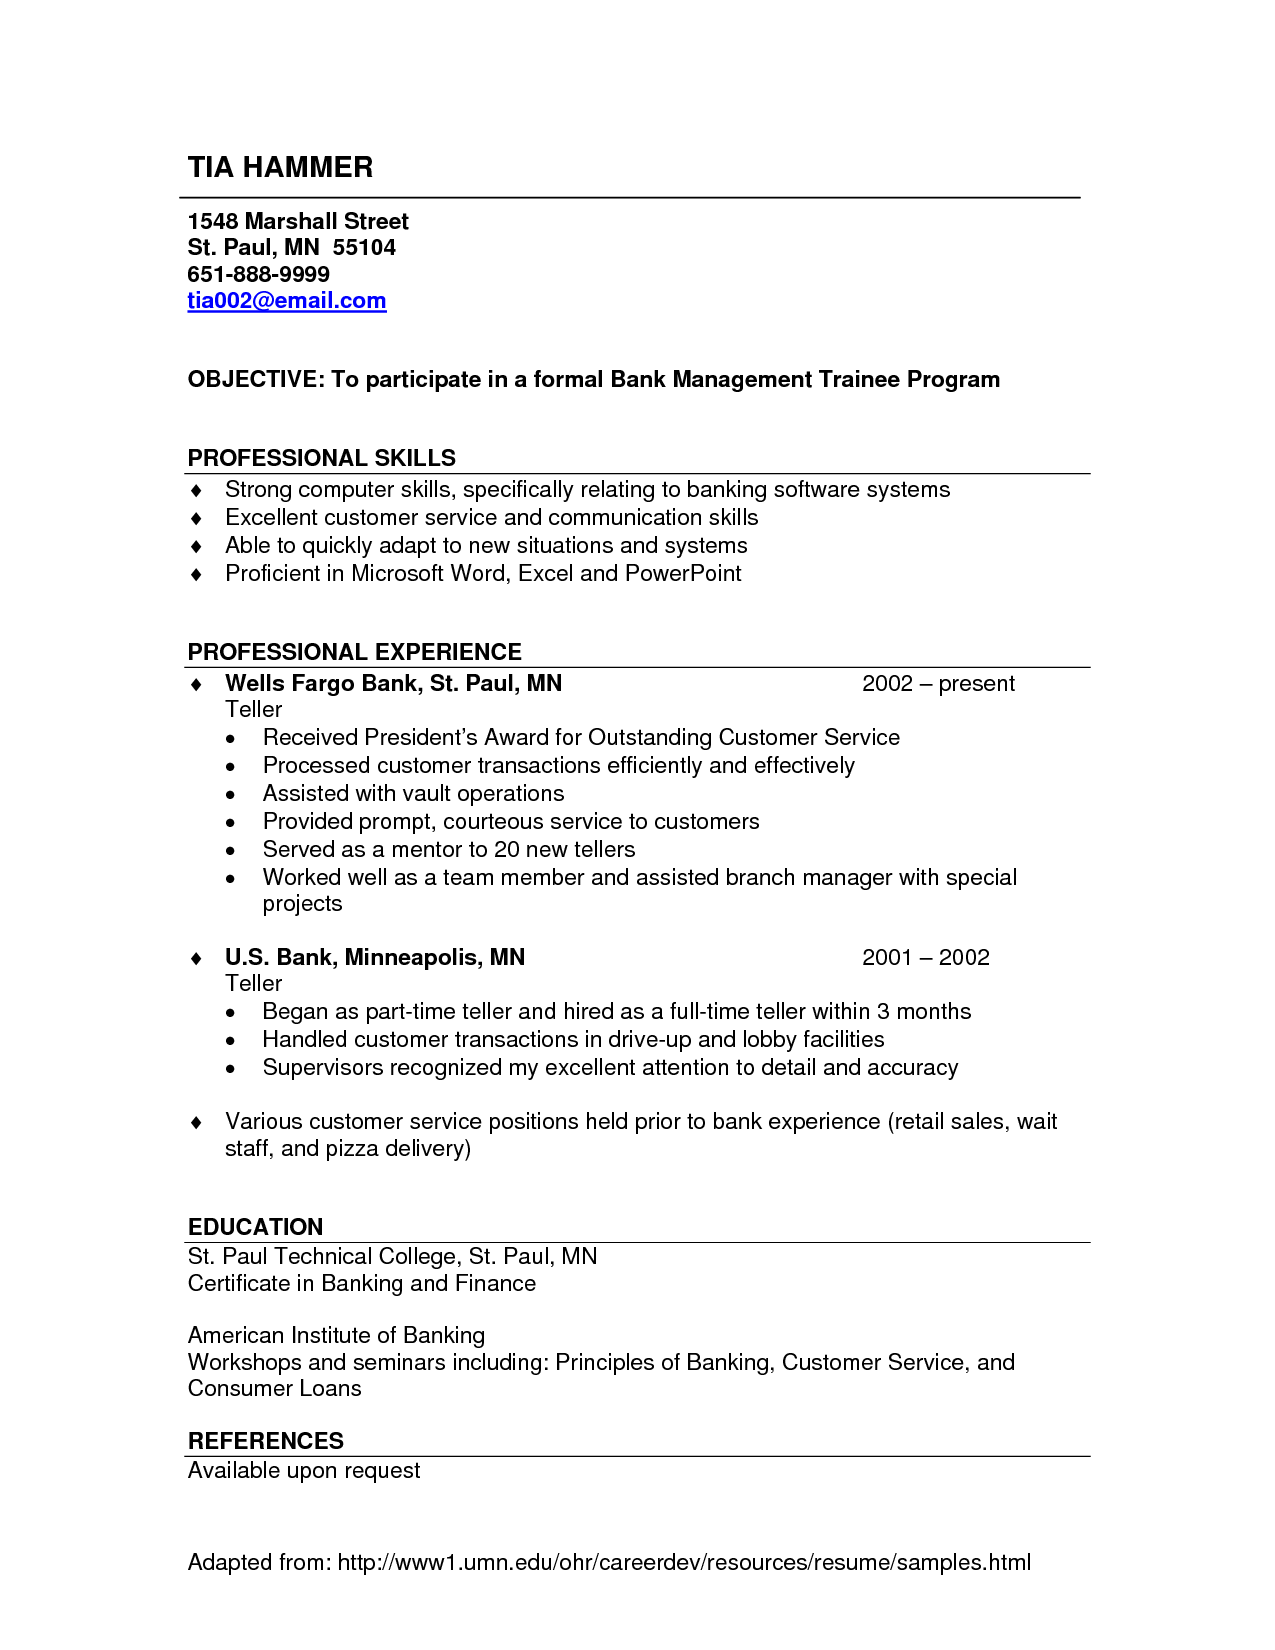 for bank teller position interesting resume sample cover letter template - Objective For Bank Teller Resume